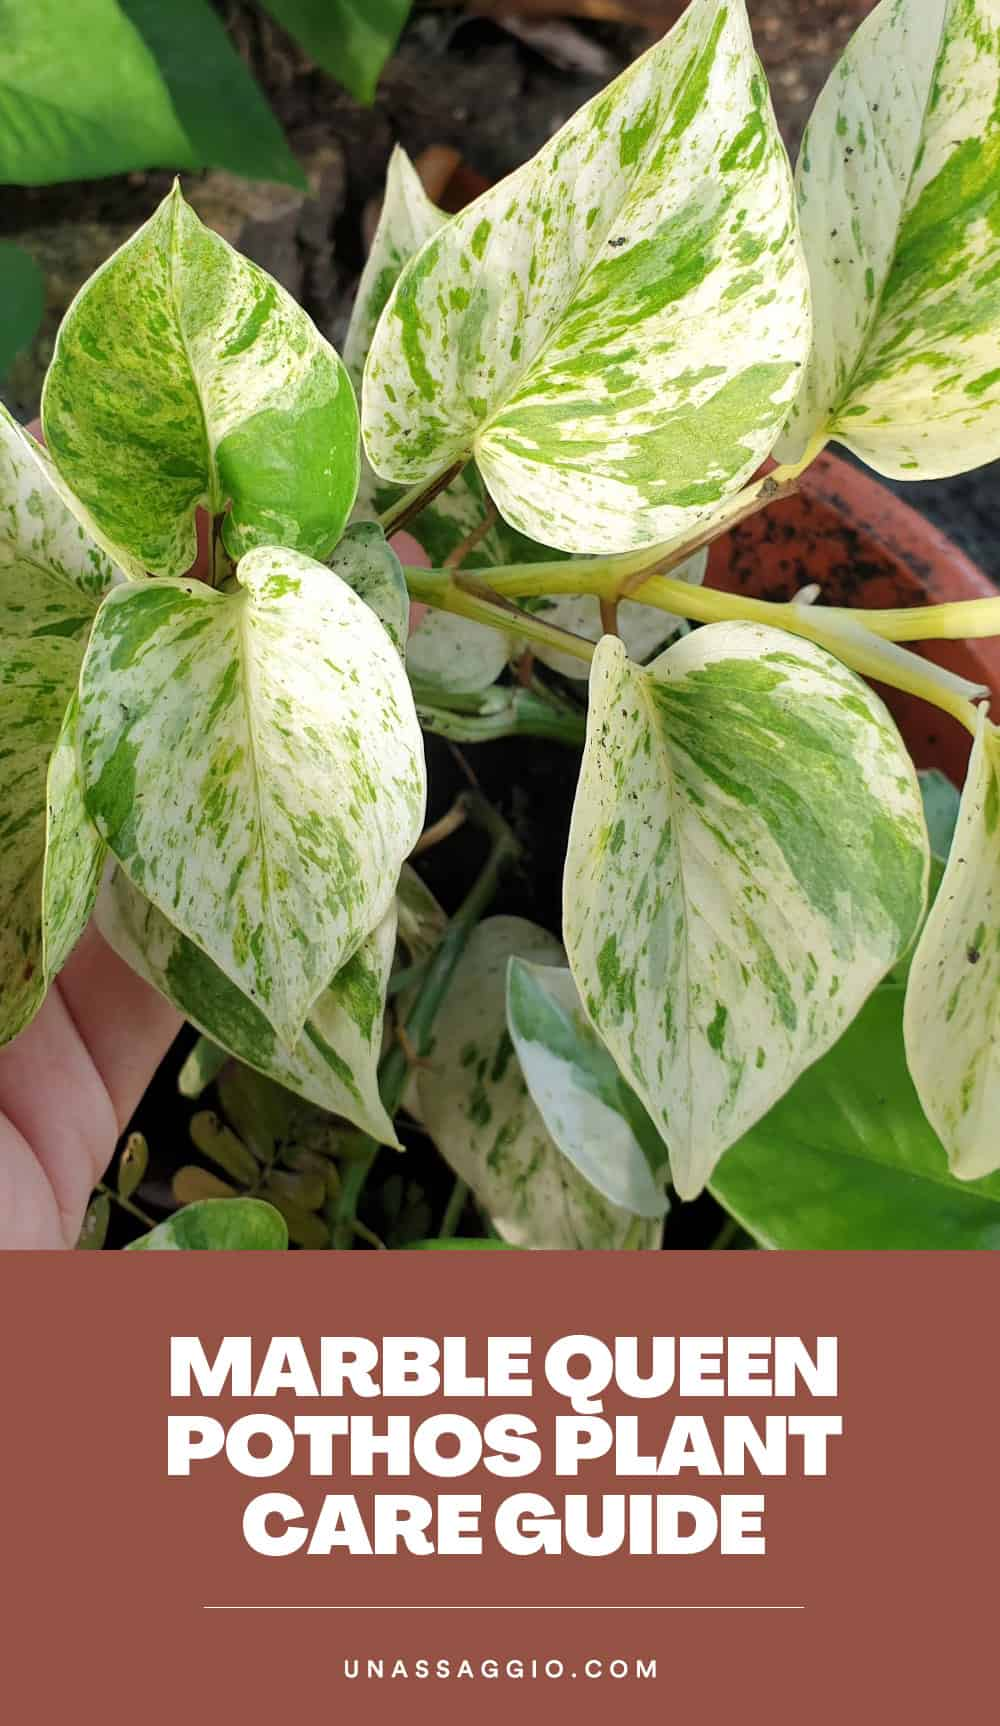 Marble Queen Pothos Plant Care Guide